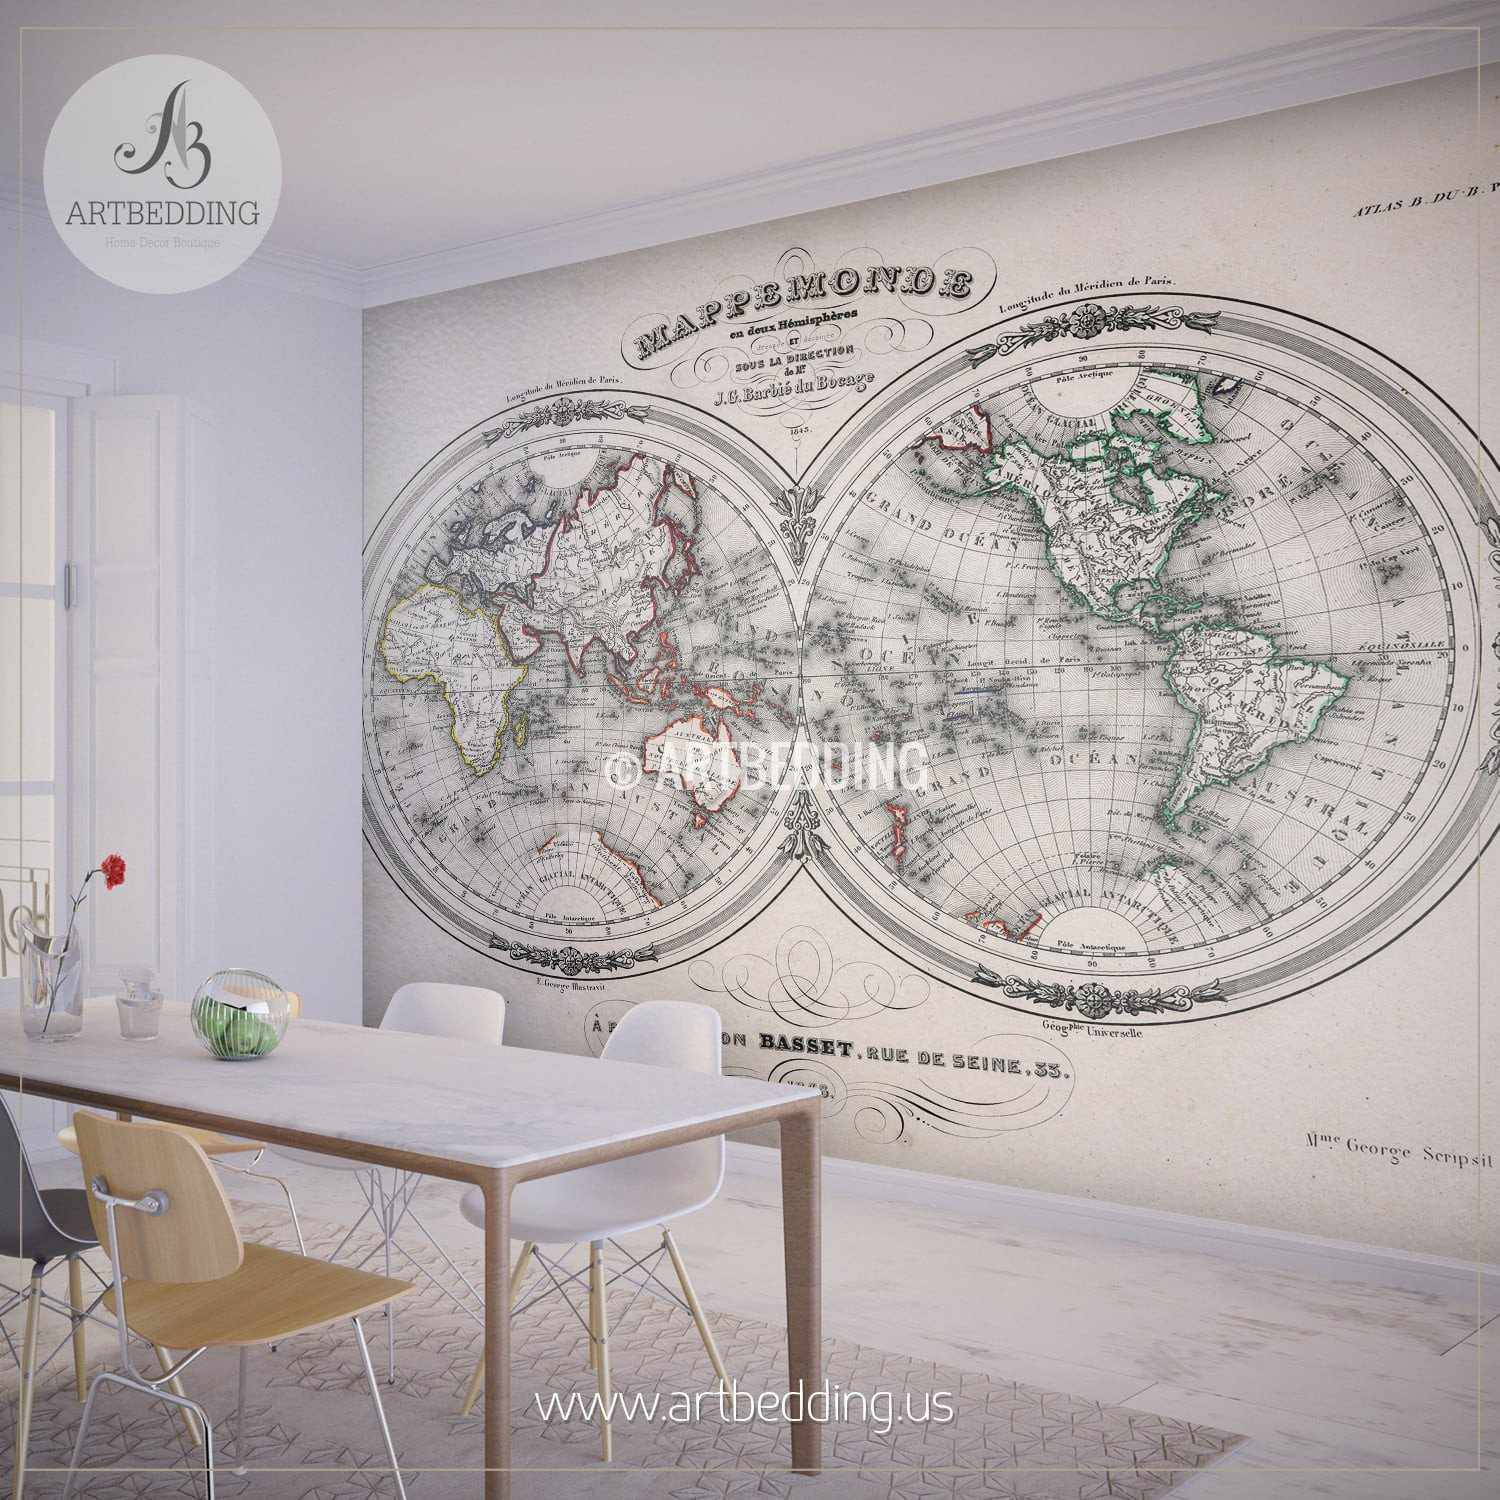 Vintage map wall mural self adhesive photo mural artbedding antique world map hemisphere 1846 wall mural self adhesive peel stick photo gumiabroncs Image collections